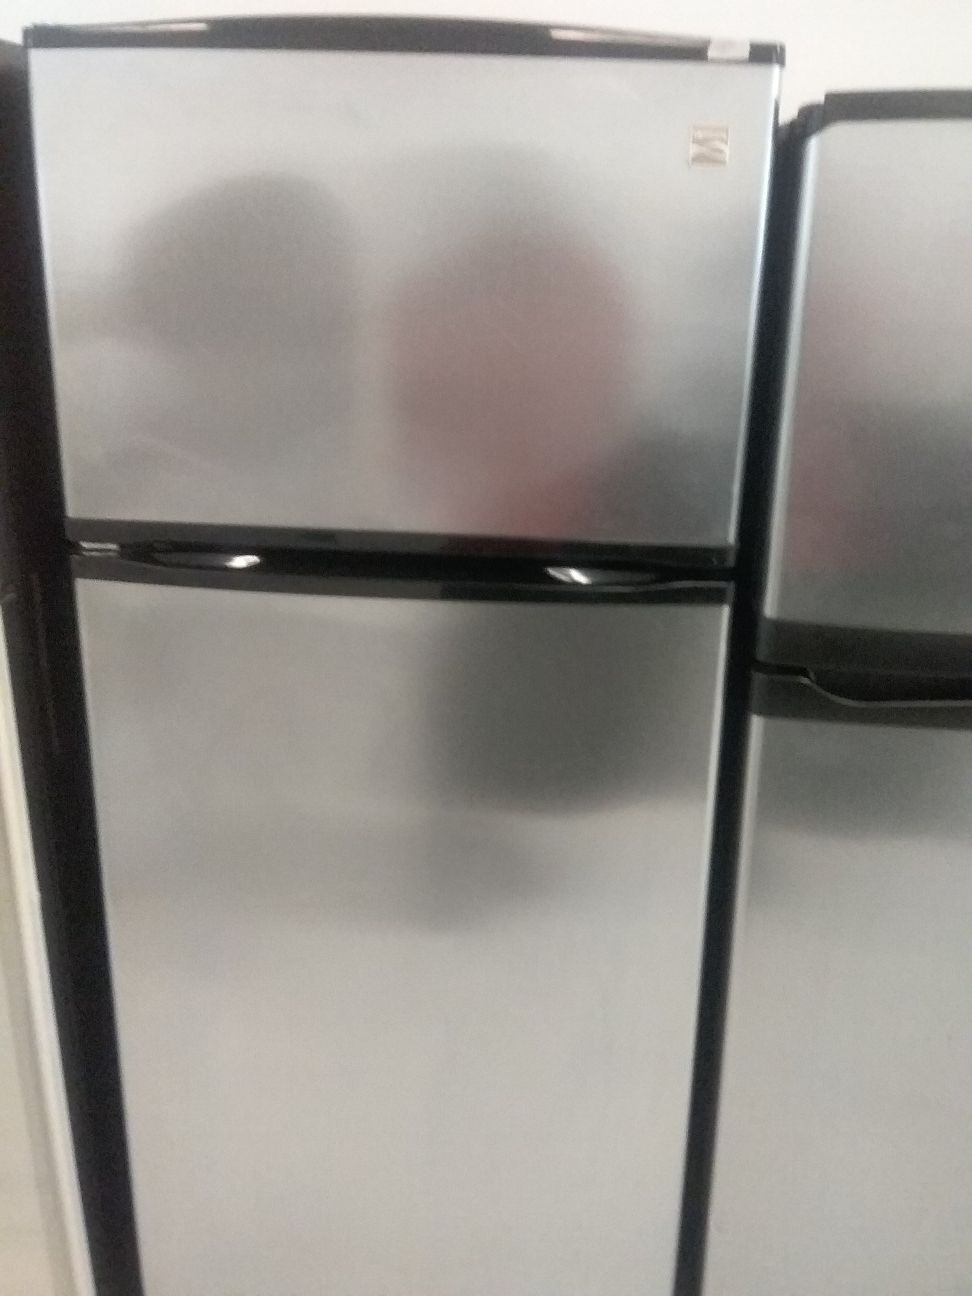 Kenmore top and bottom stainless steel refrigerator used good condition 90days warranty